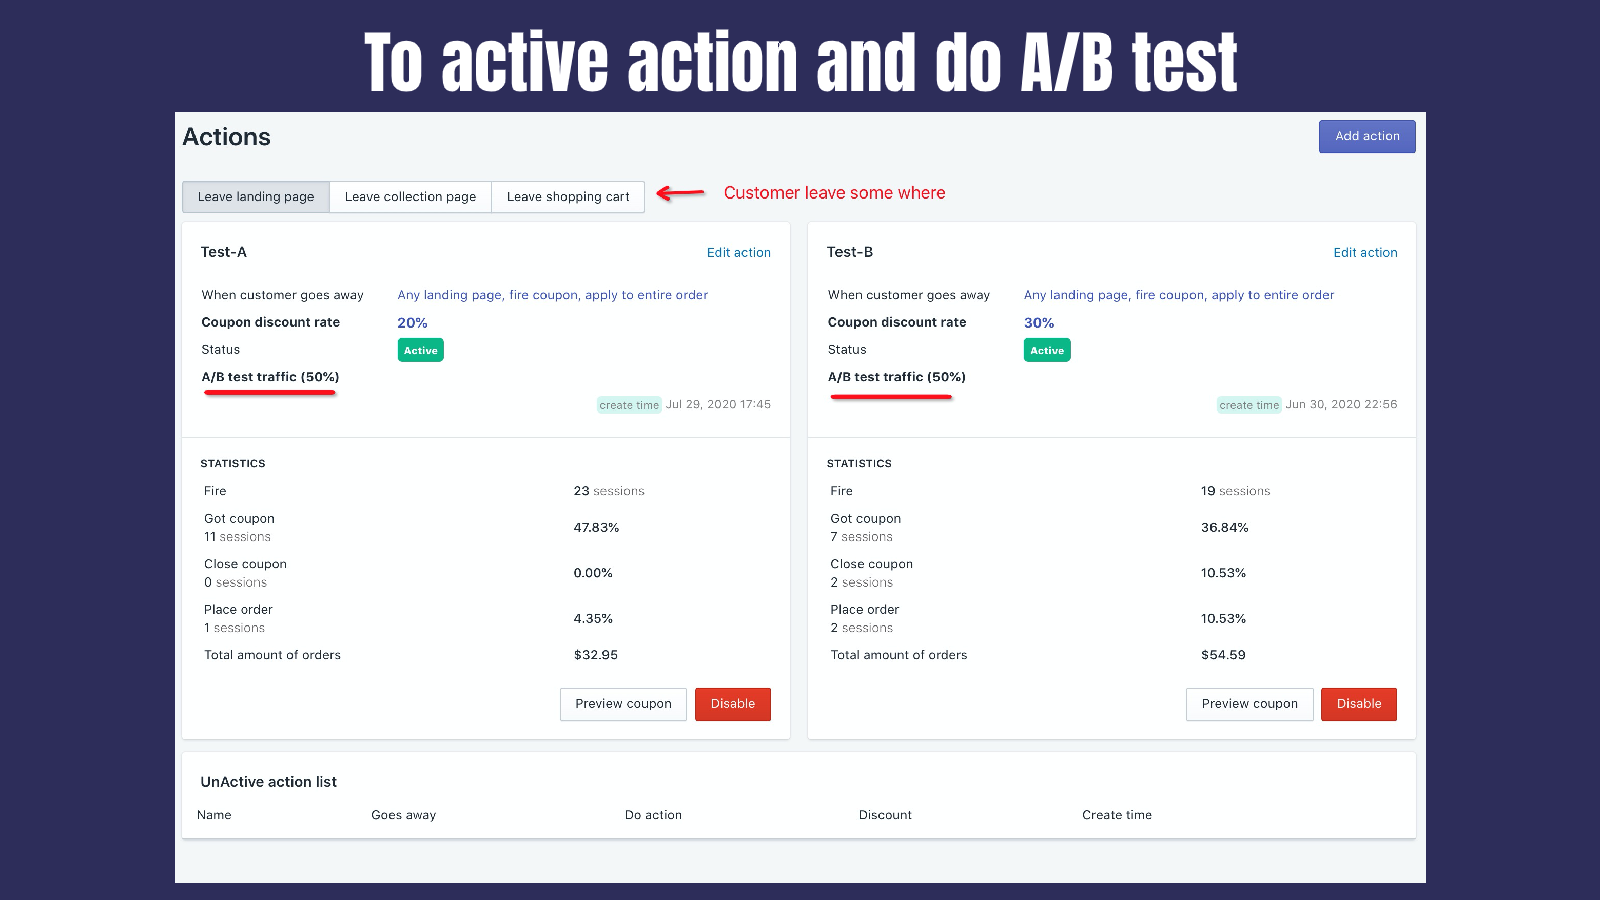 Action A/B test